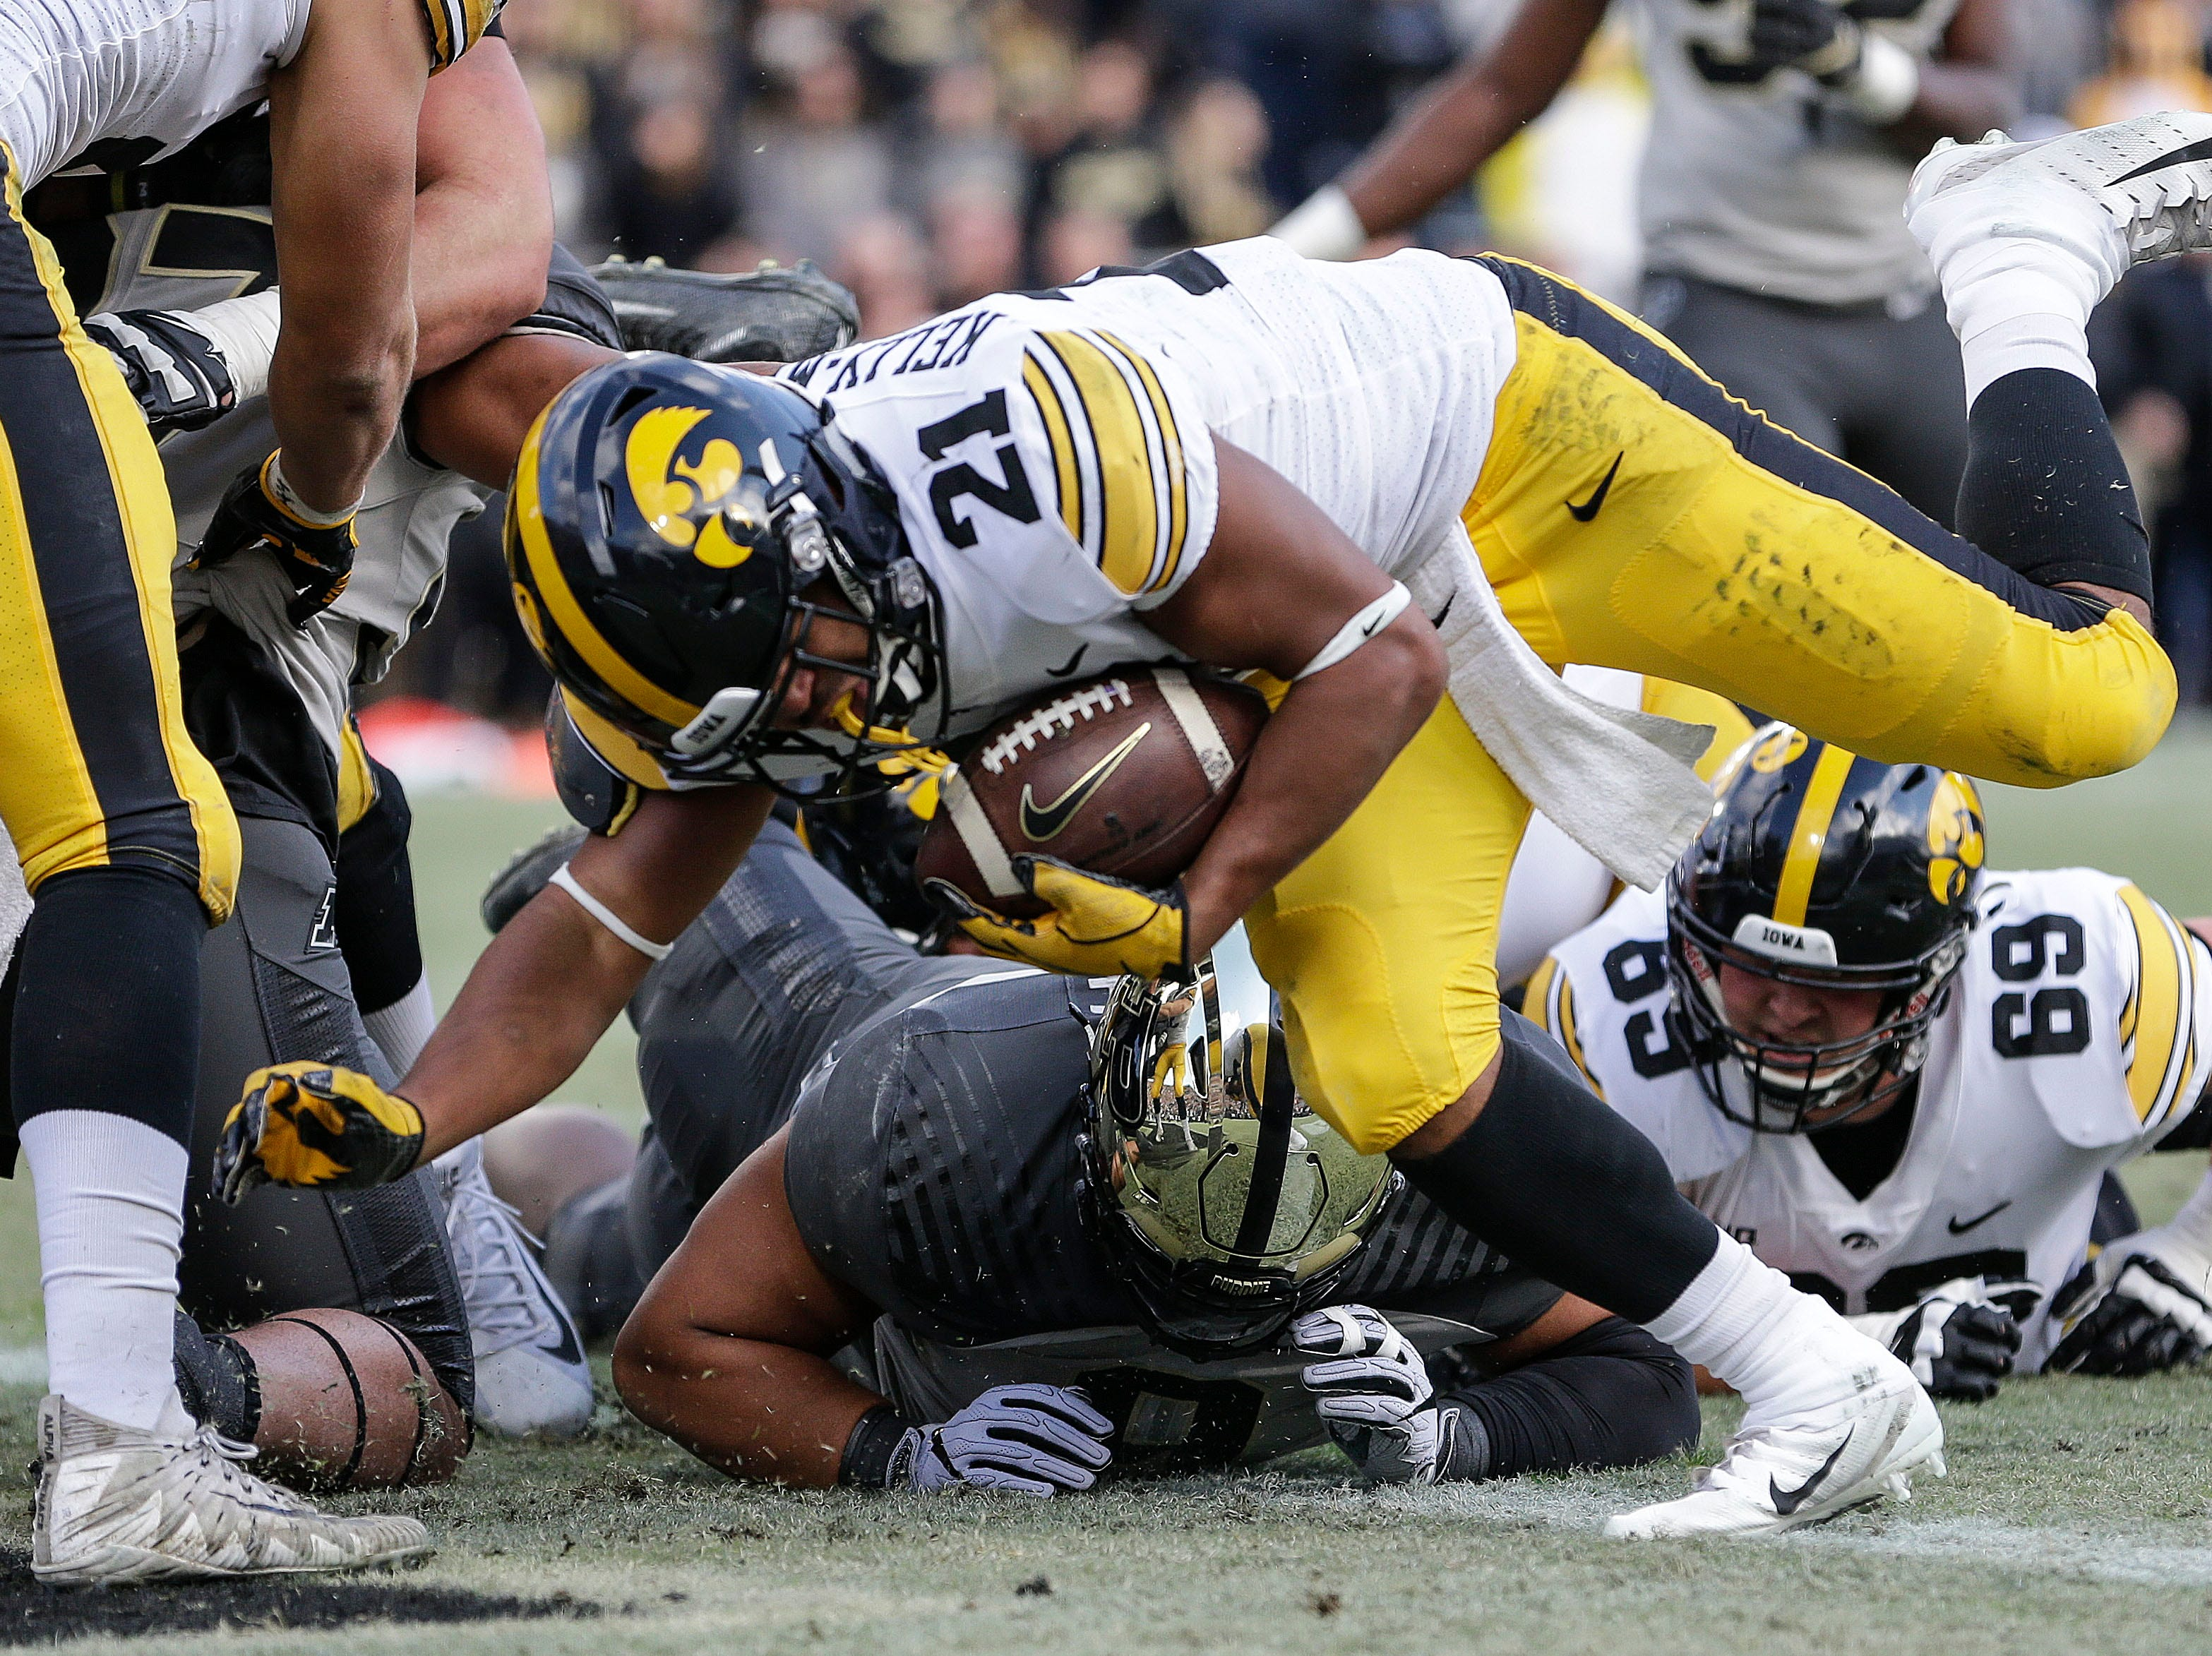 Iowa running back Ivory Kelly-Martin (21) scores a touchdown while playing against Purdue in the first half of an NCAA college football game in West Lafayette, Ind., Saturday, Nov. 3, 2018.